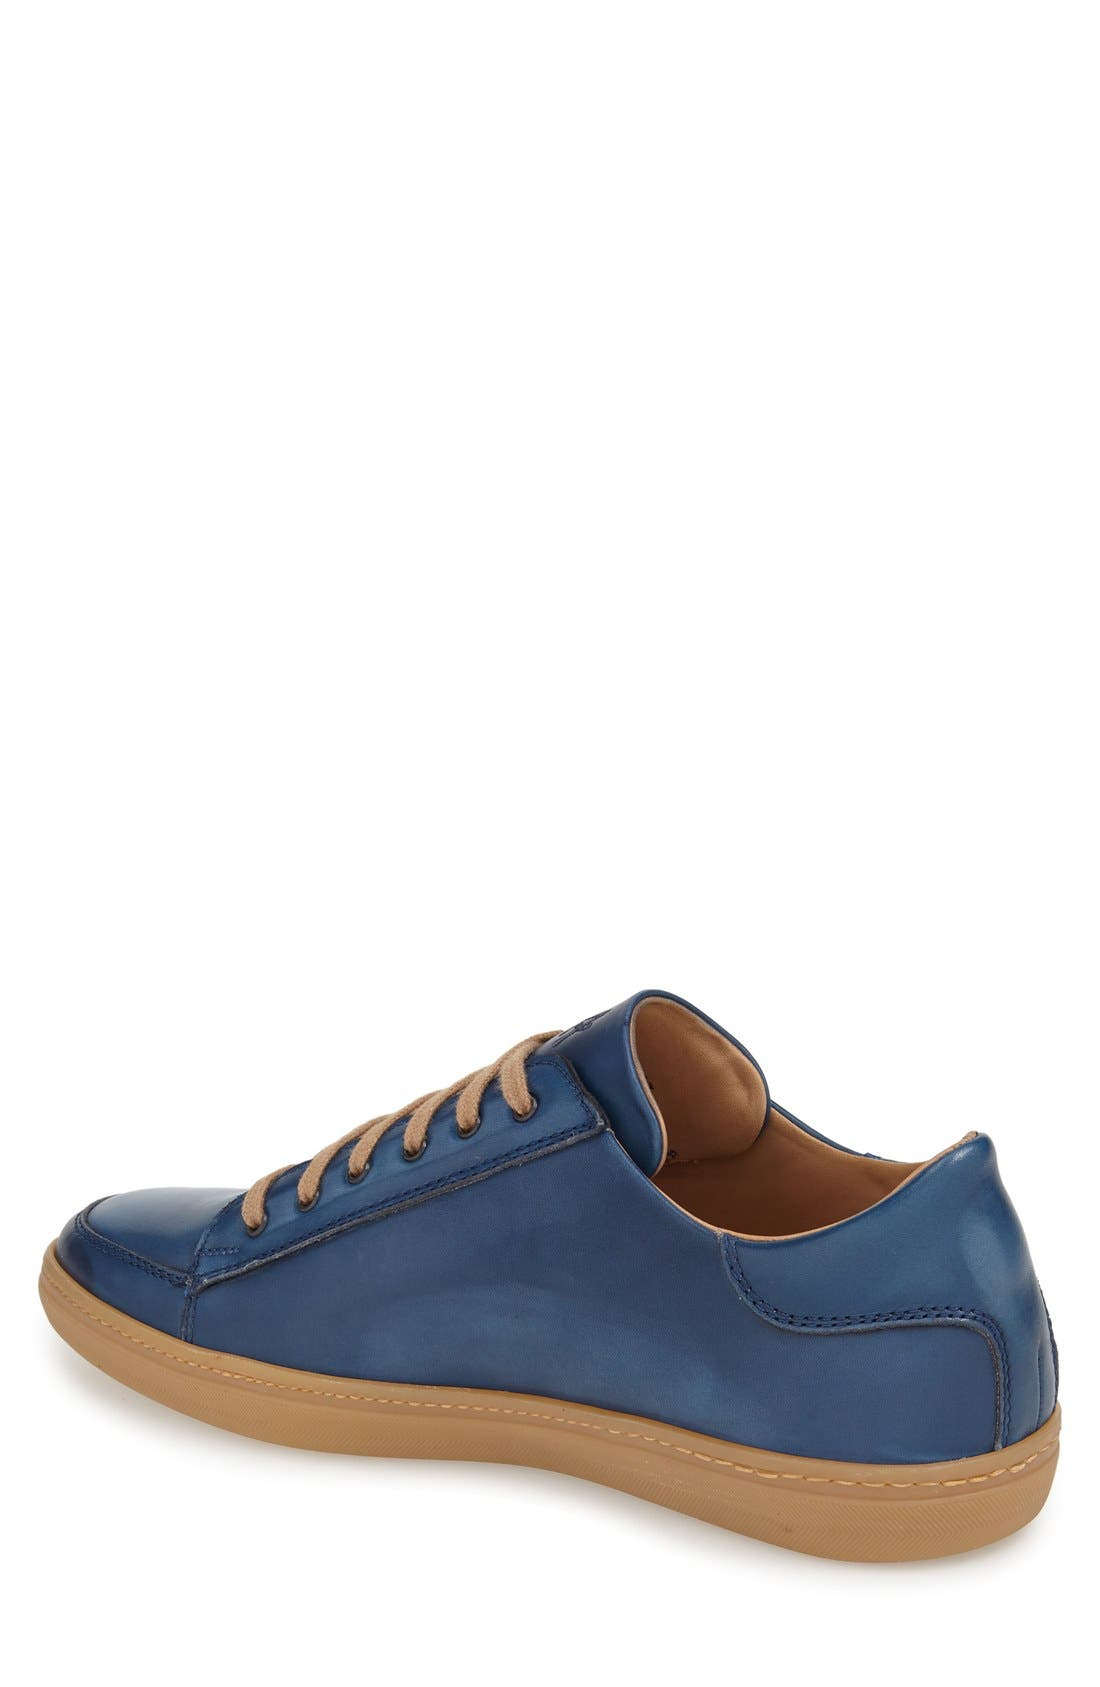 'Masi' Lace-Up Sneaker,                             Alternate thumbnail 2, color,                             Blue